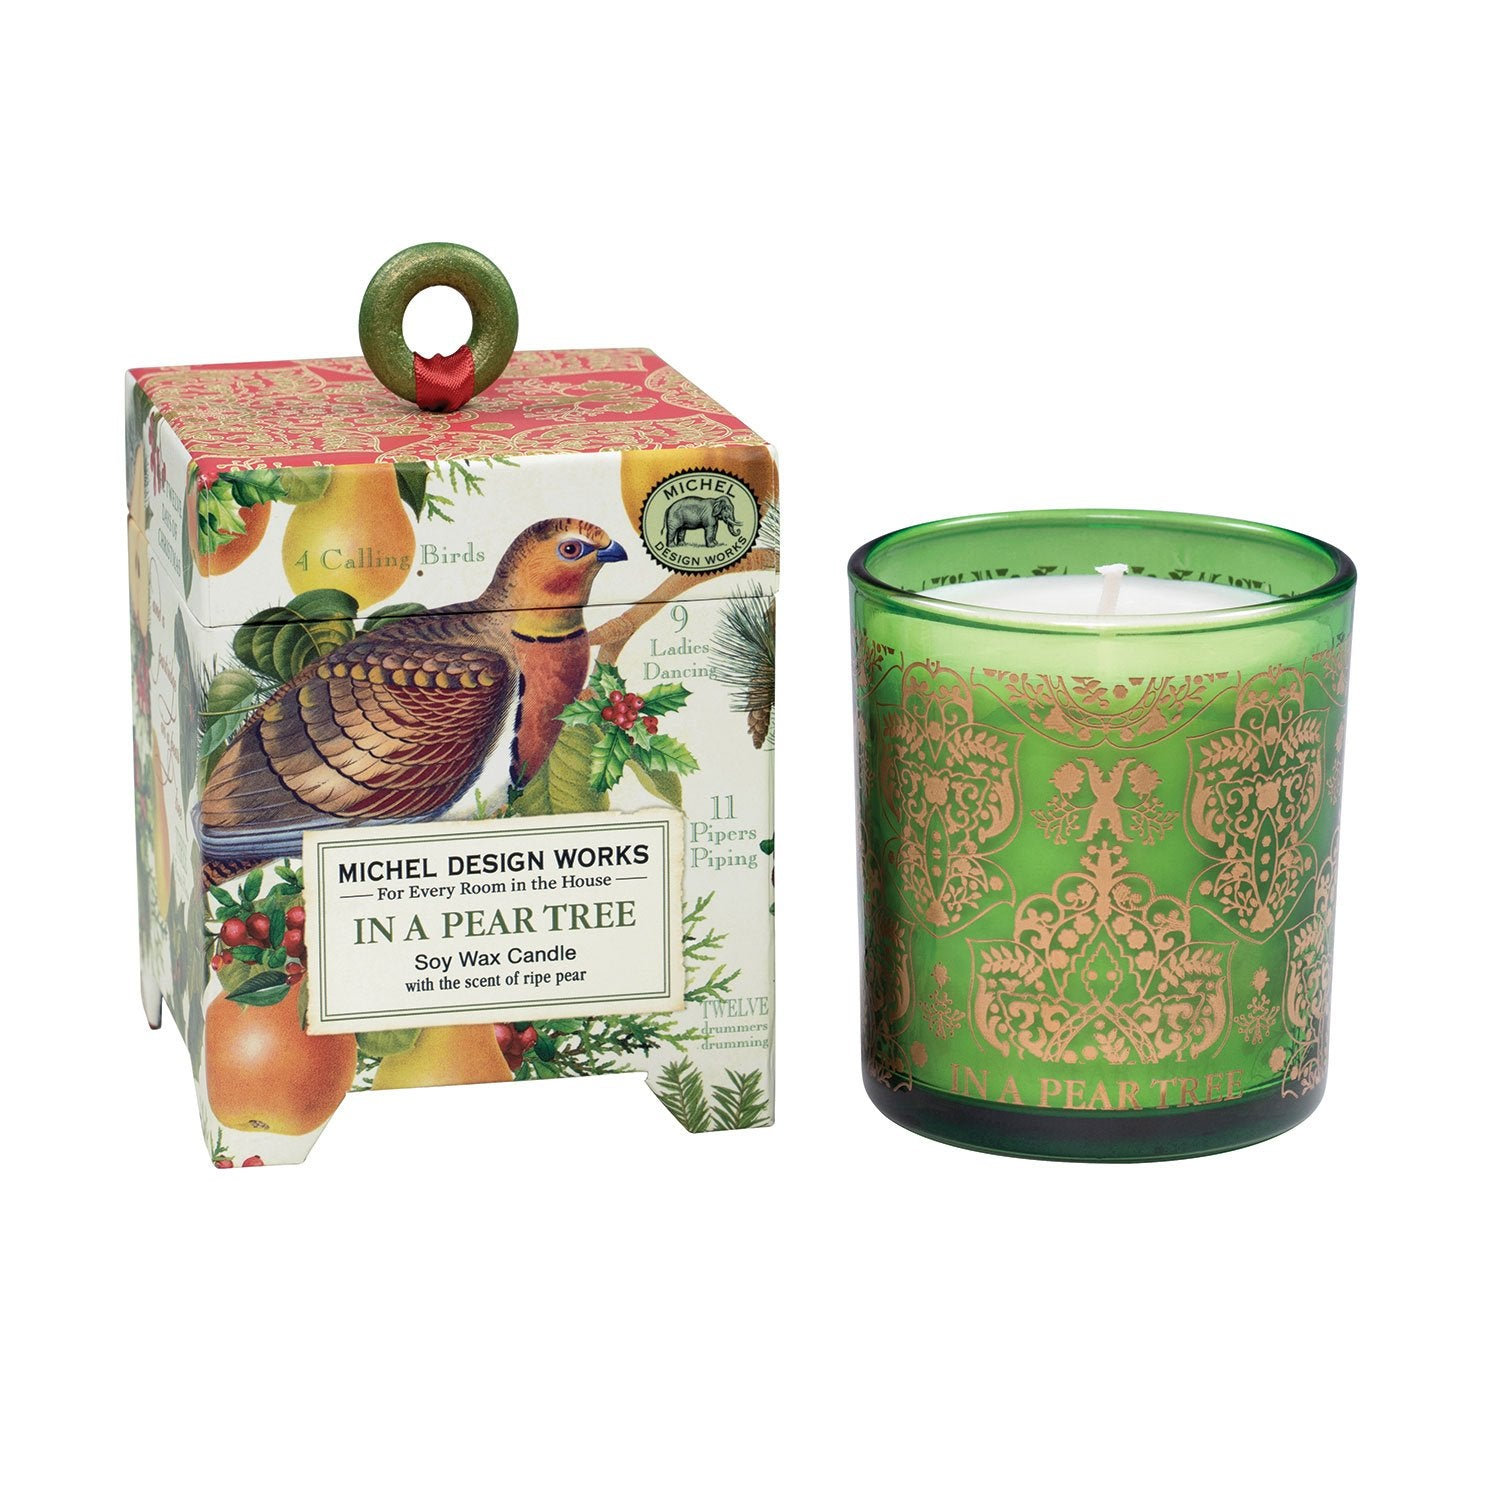 In a Pear Tree 6.5 oz. Soy Wax Candle